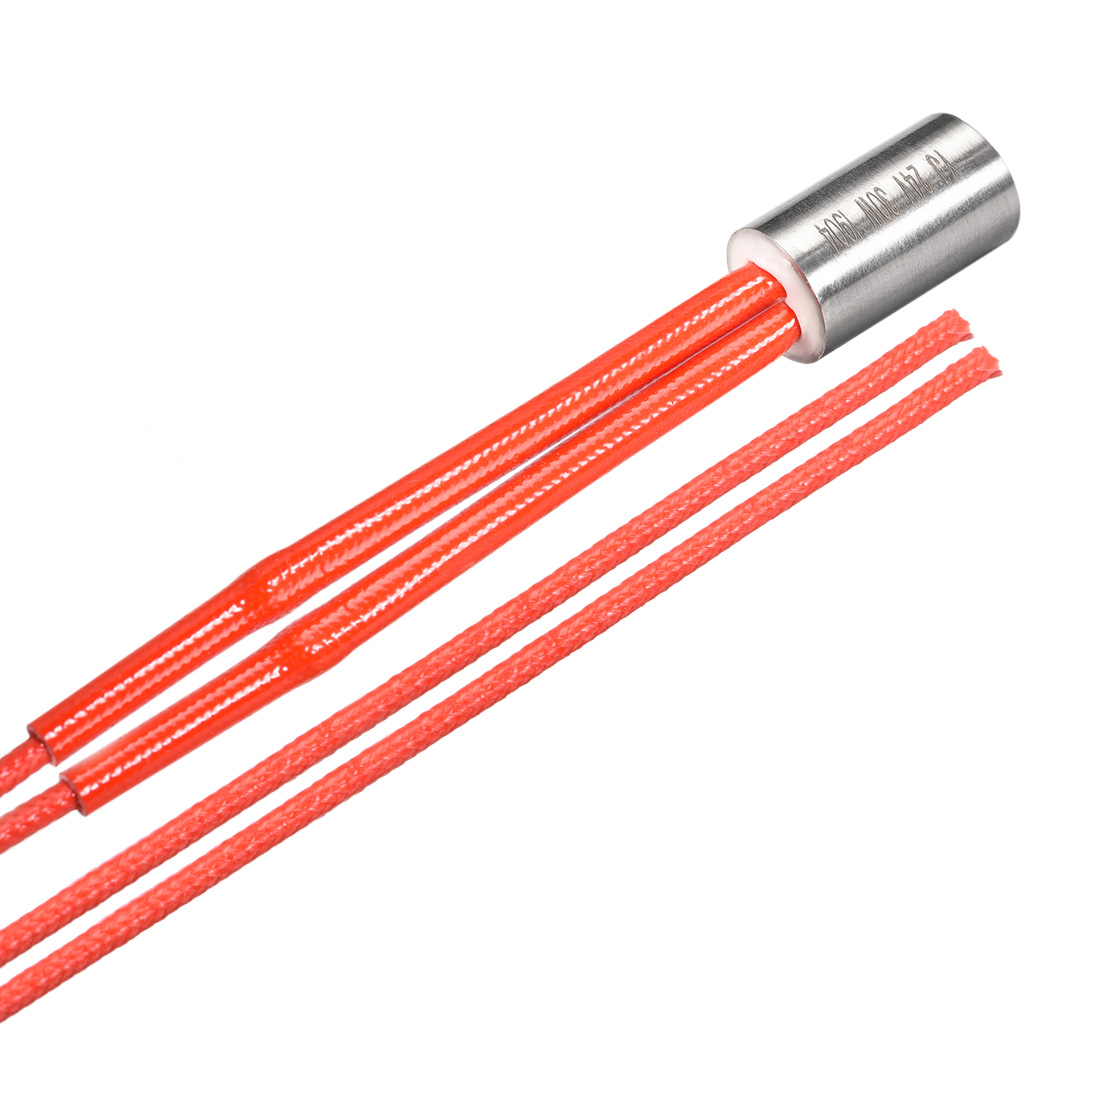 Uxcell Cartridge Heater AC 24V 30W Stainless Steel Heating Element Replacement